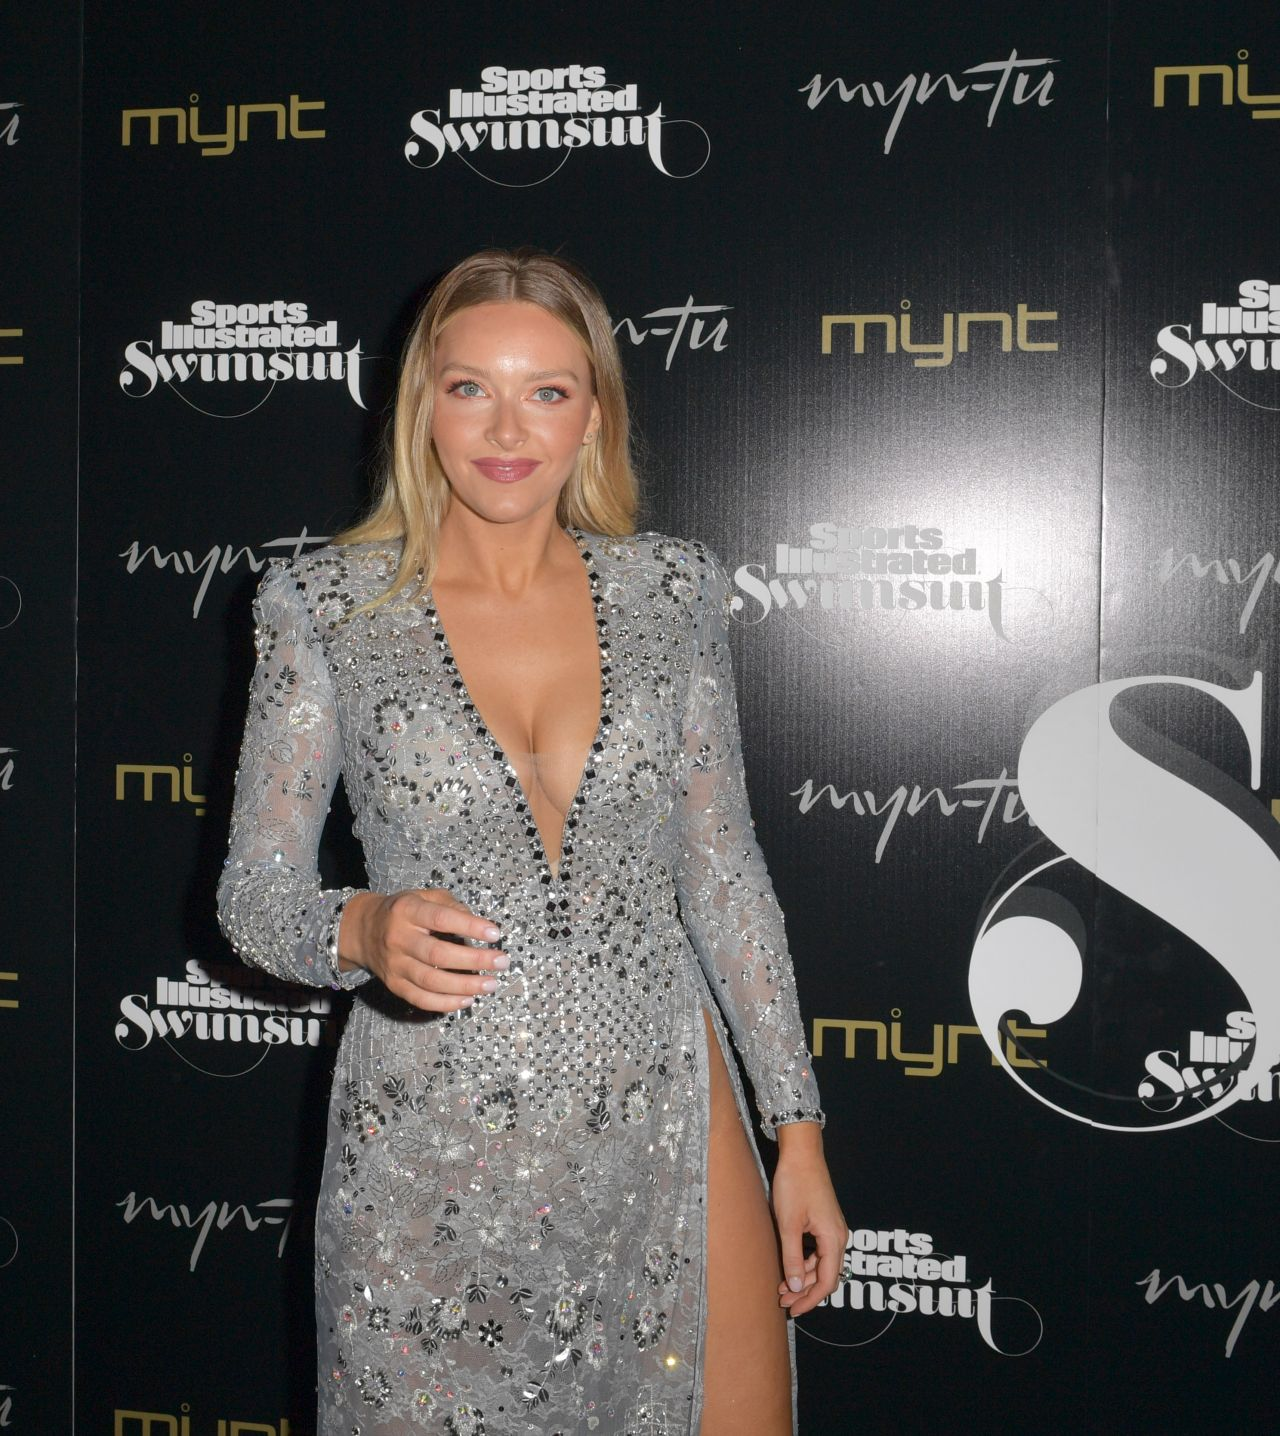 Camille Kostek Swkmsuit: SI Swimsuit Celebrates 2019 Issue Launch